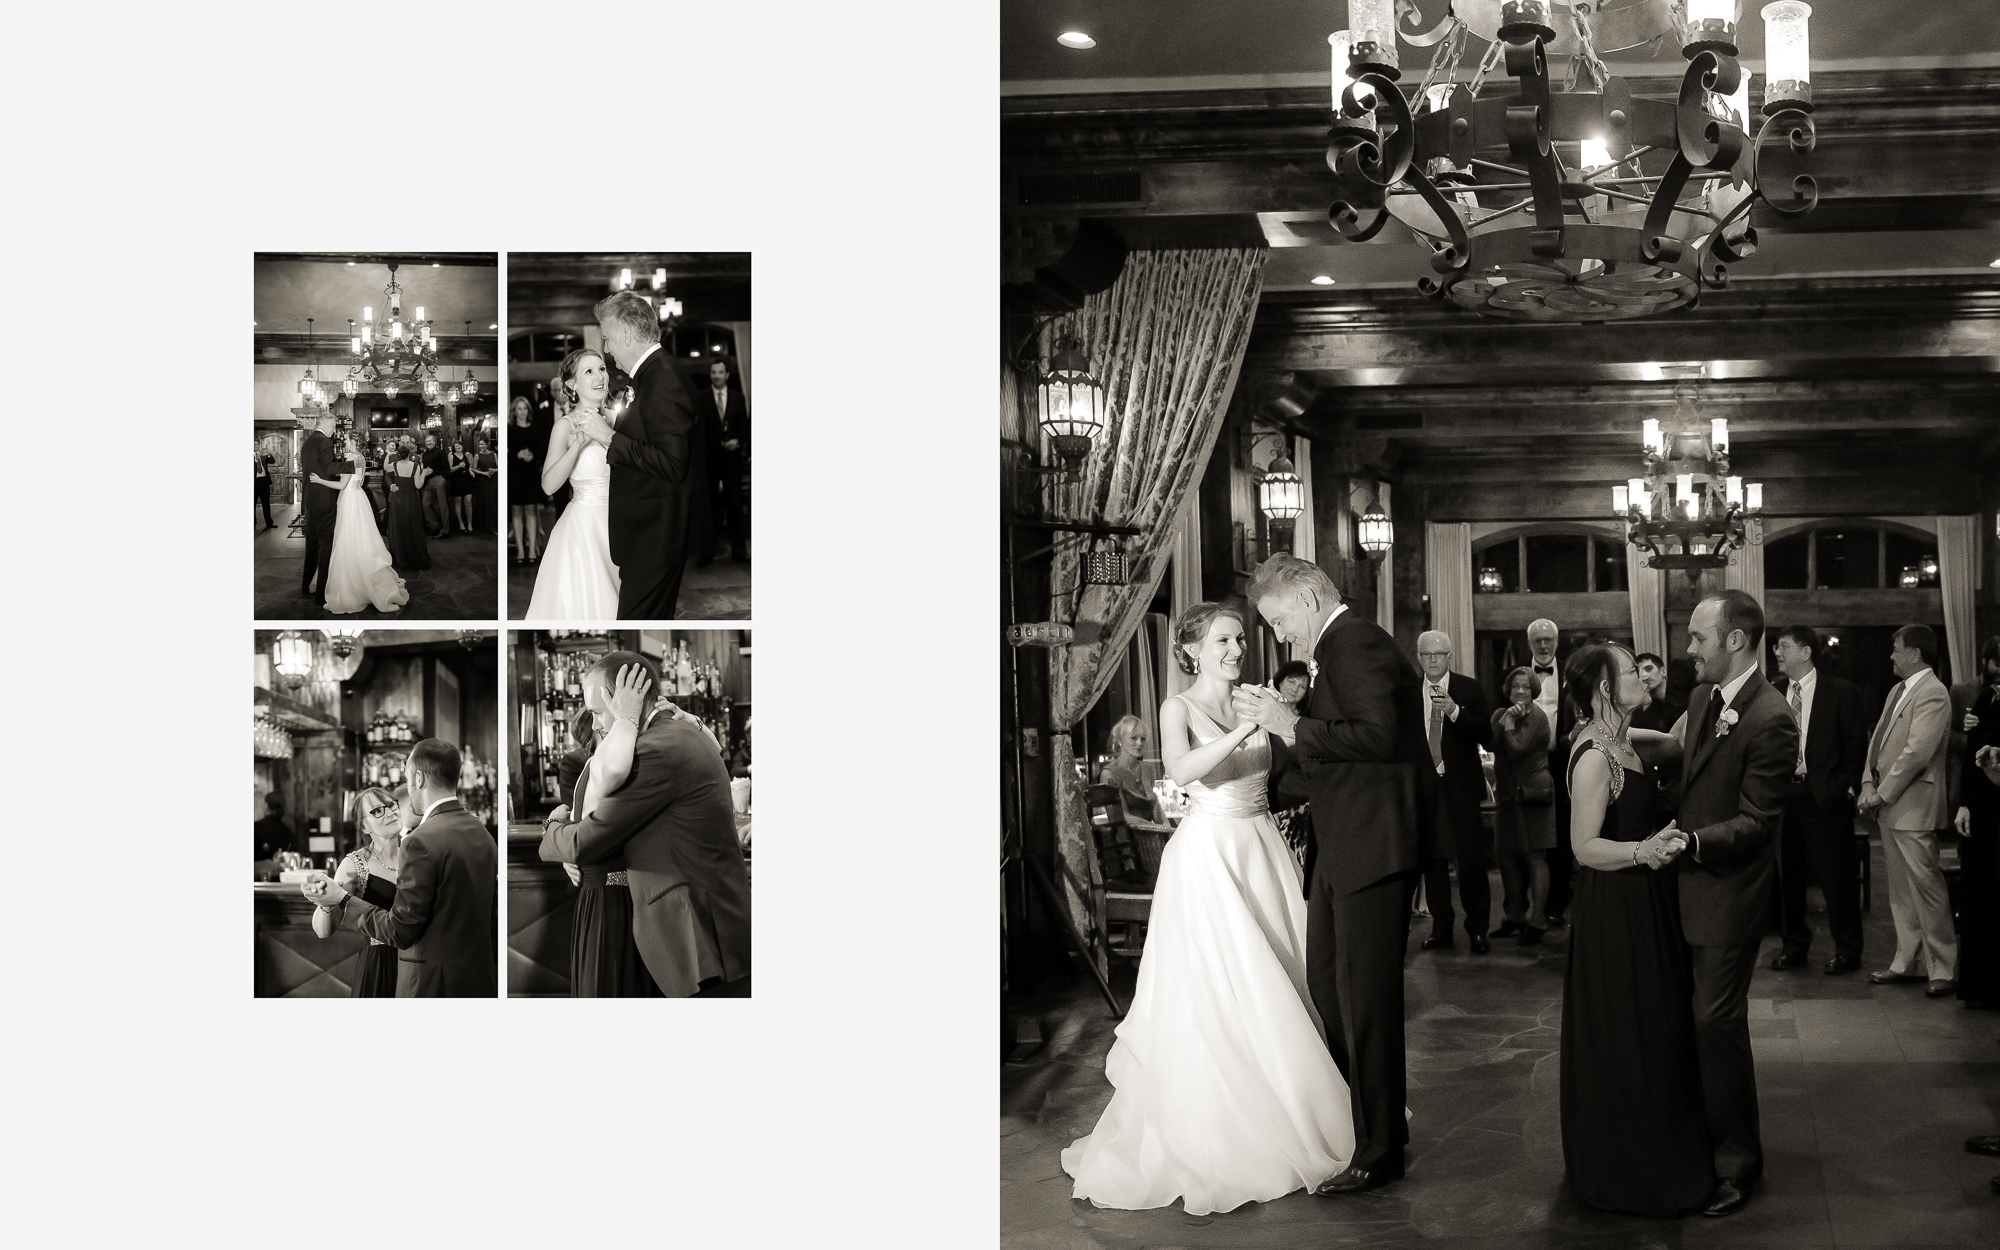 Julia+Robert_weddingbook_spp-95.jpg